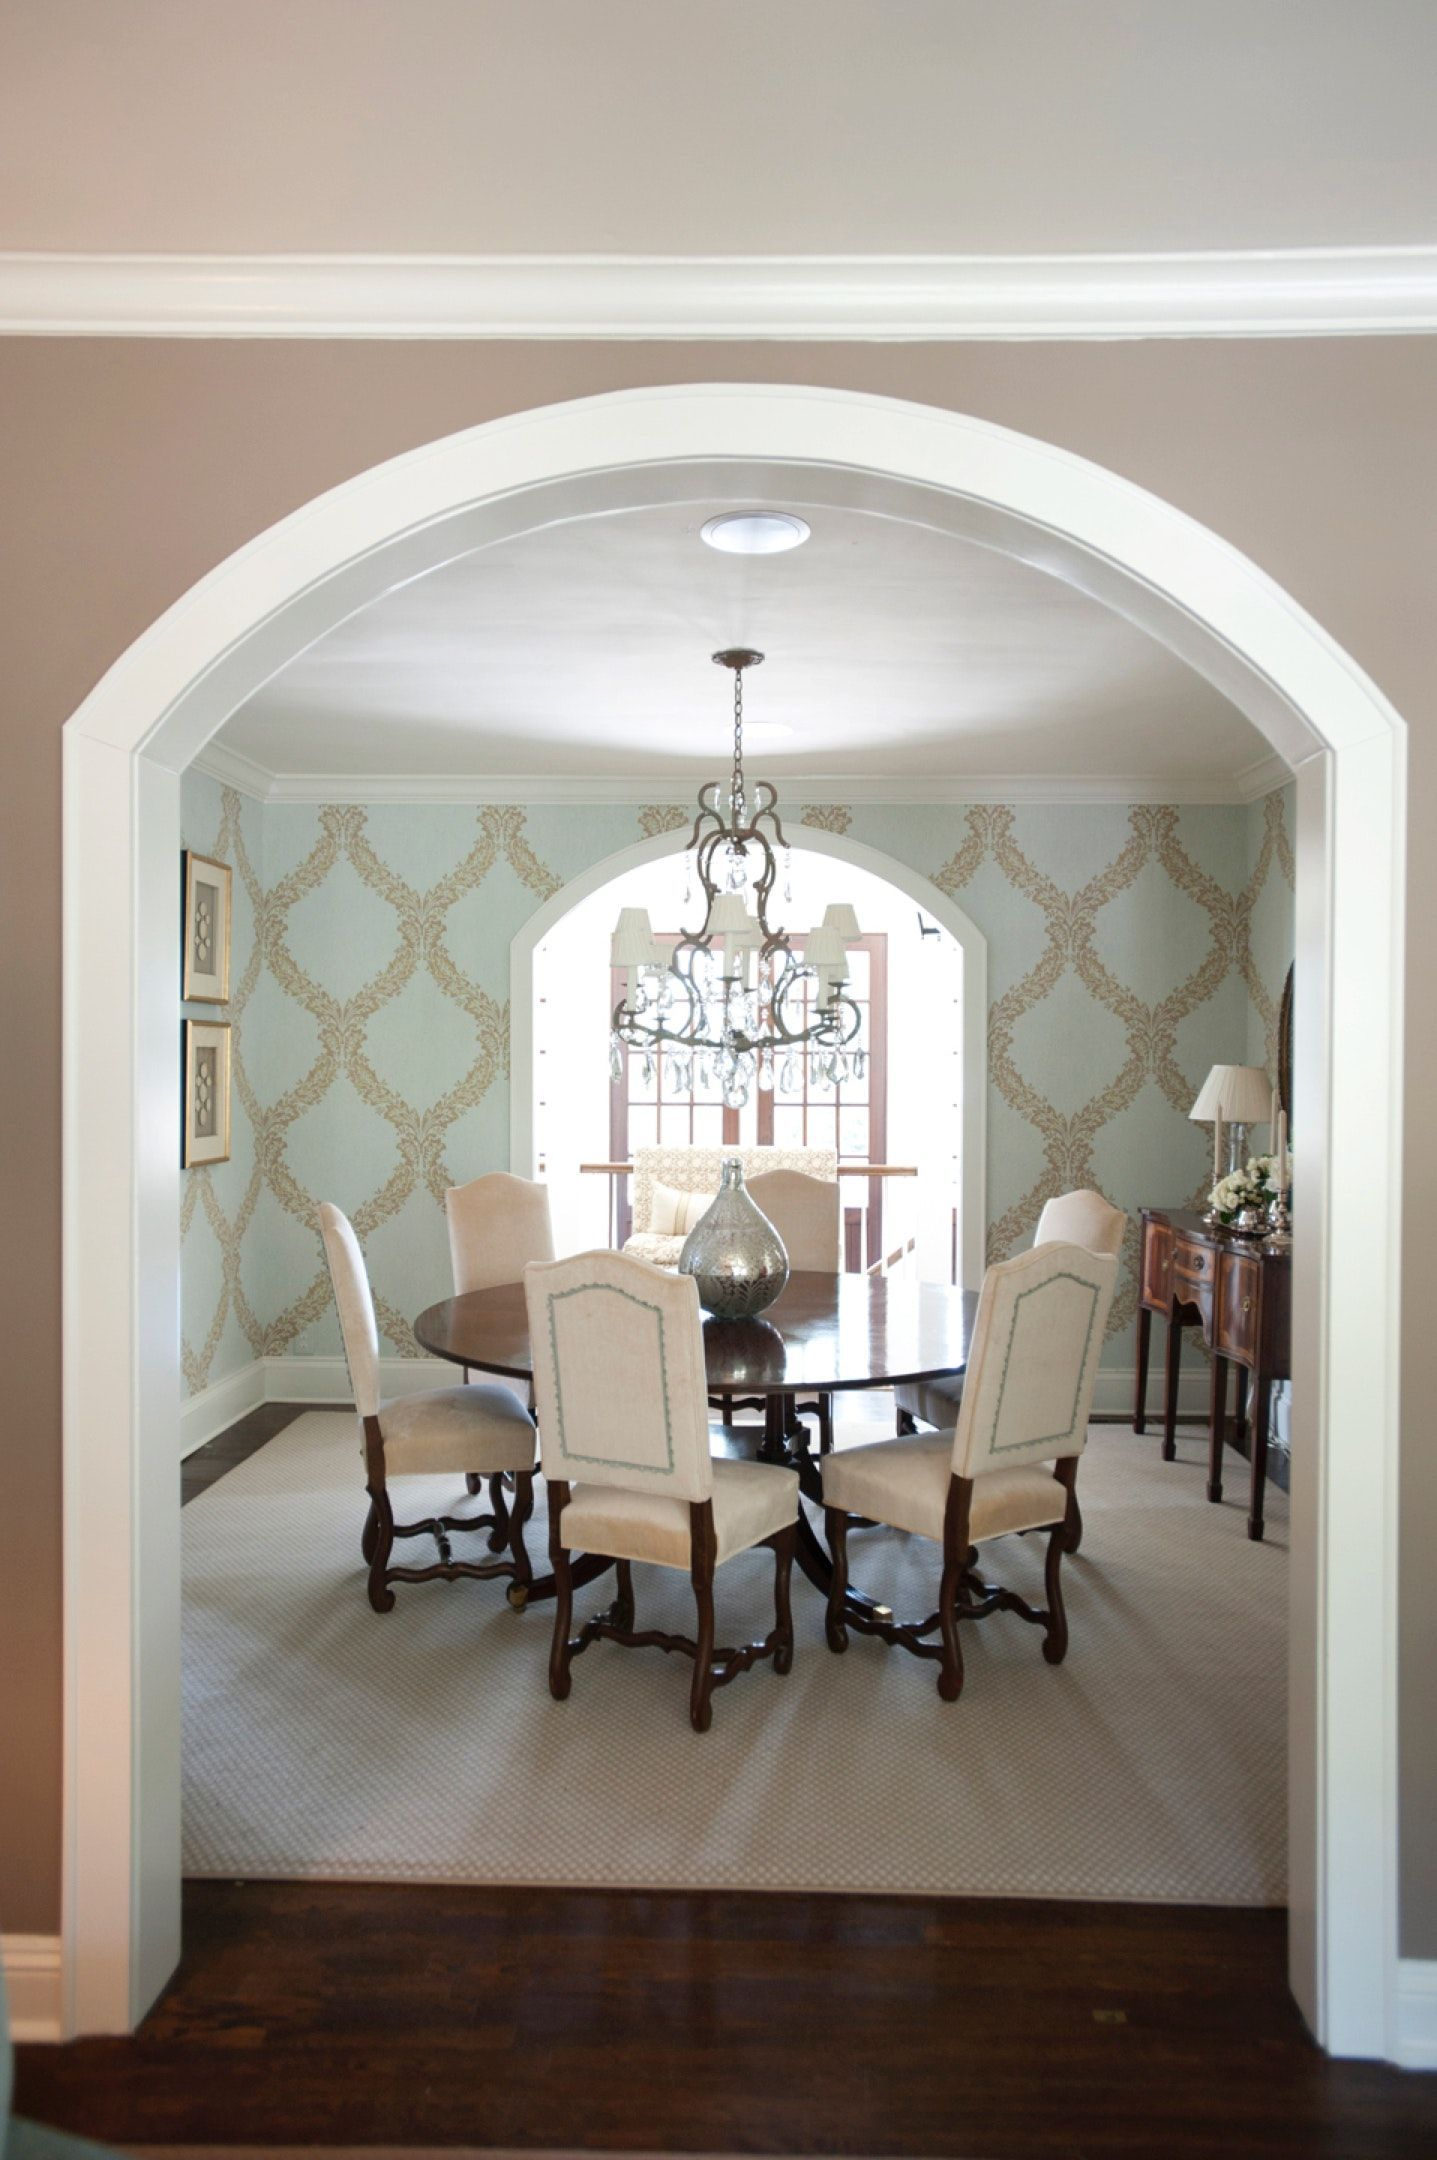 Related Image Archways In Homes Dining Room Design Interior